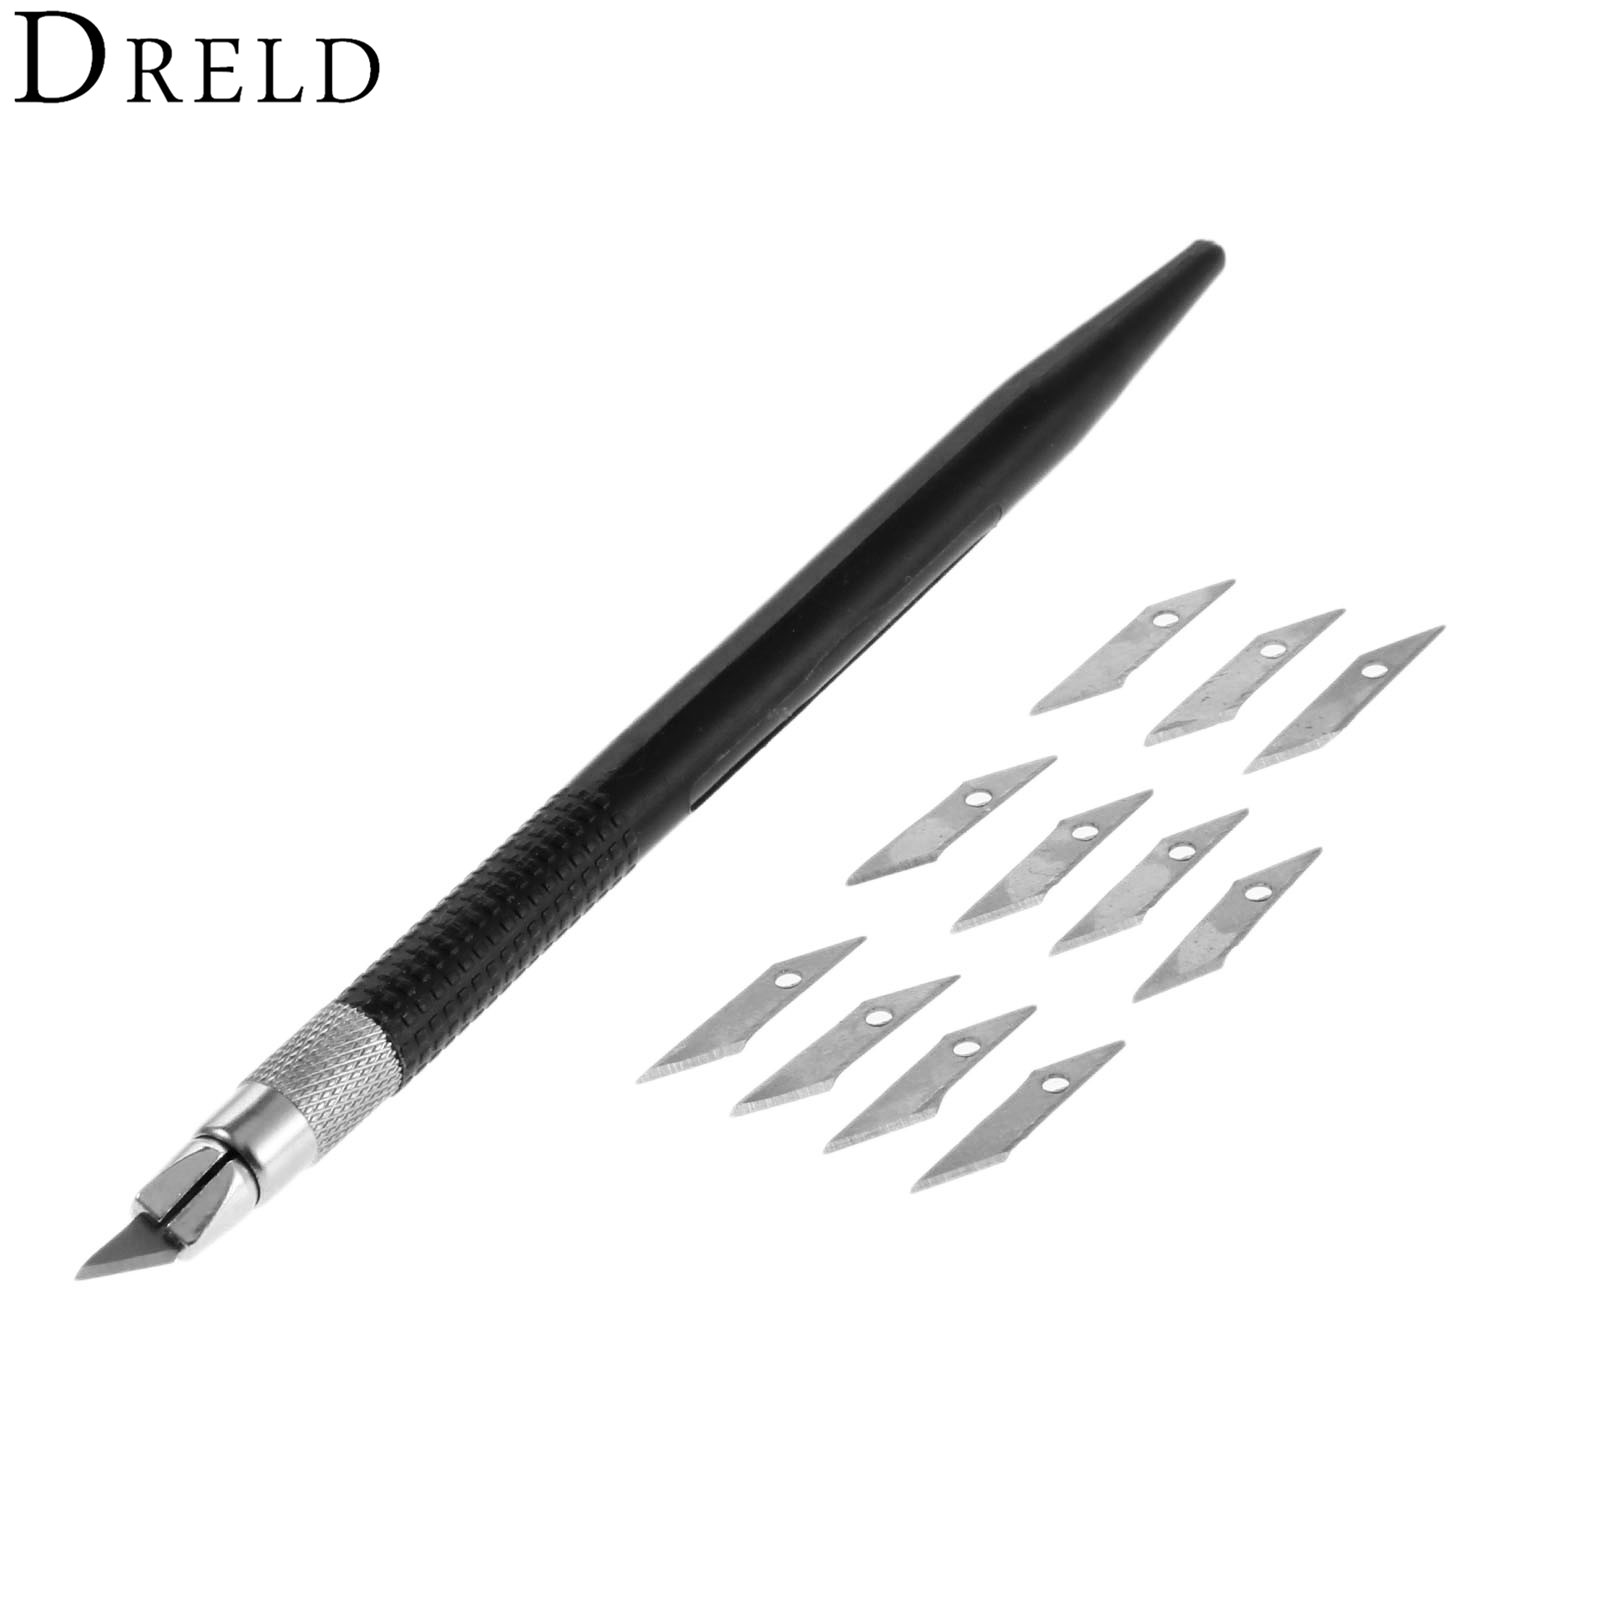 Dreld 12 Pcs Blades Hobby Knife Cutter Leather Diy Tools